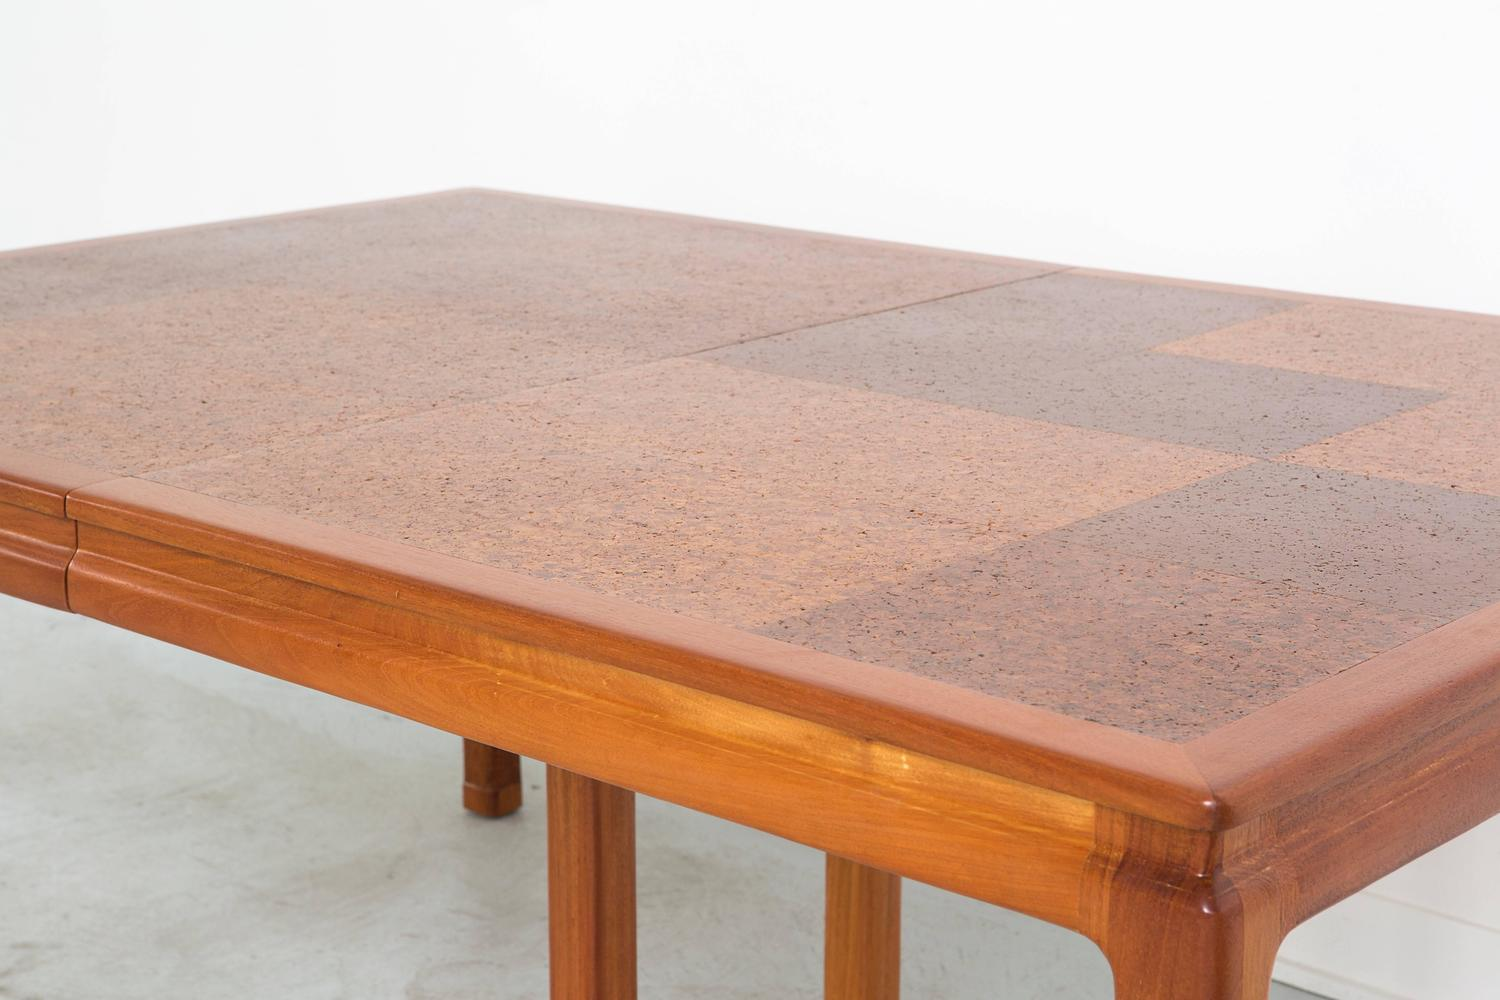 Cork Dining Table By Edward Wormley For Dunbar For Sale At